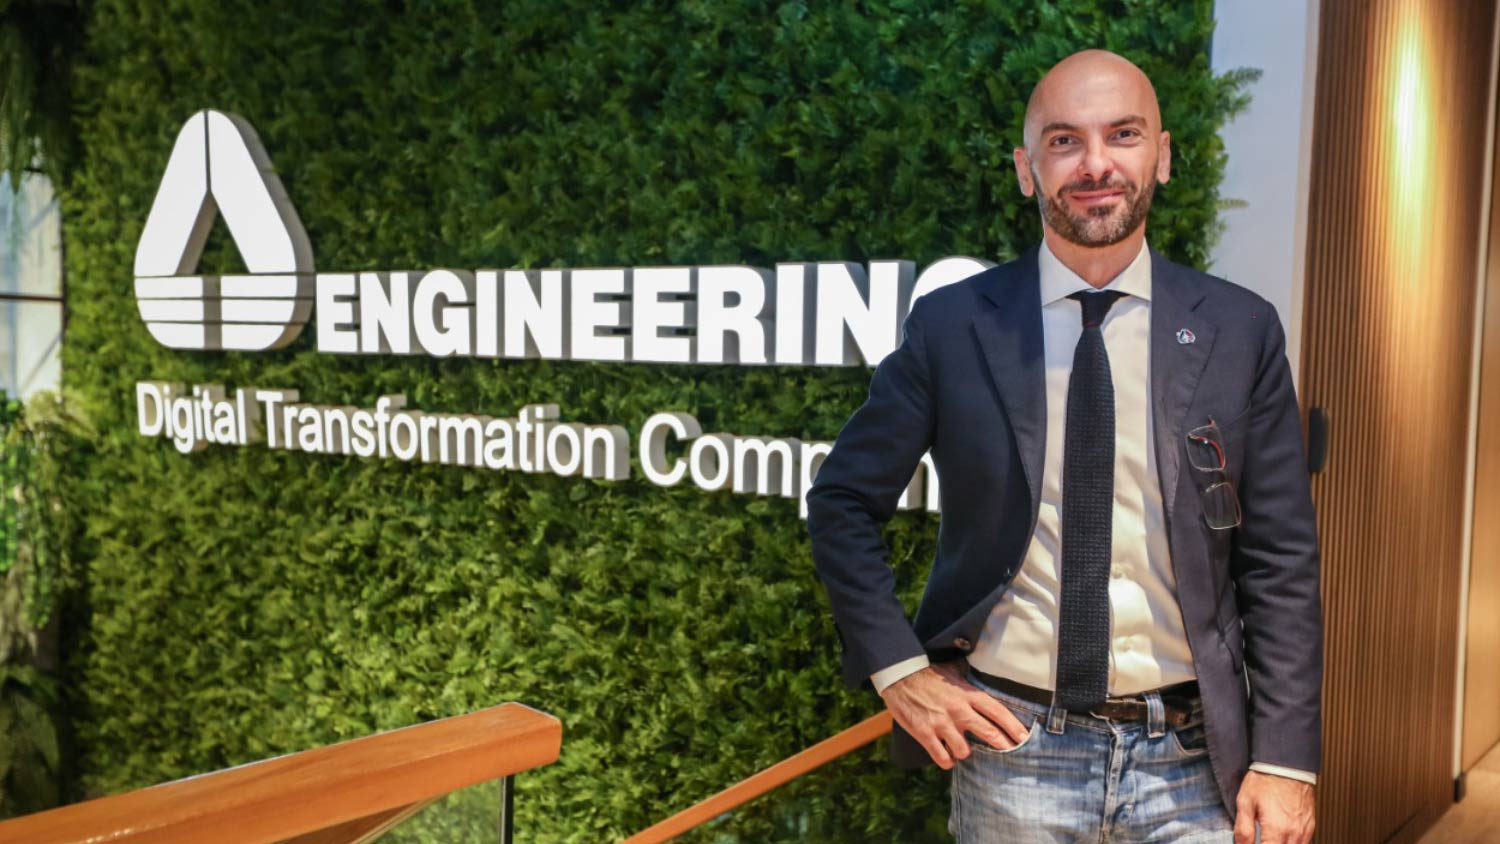 Filippo Di Cesare, CEO da Engineering, conta como a pandemia acelerou a Transformação Digital.